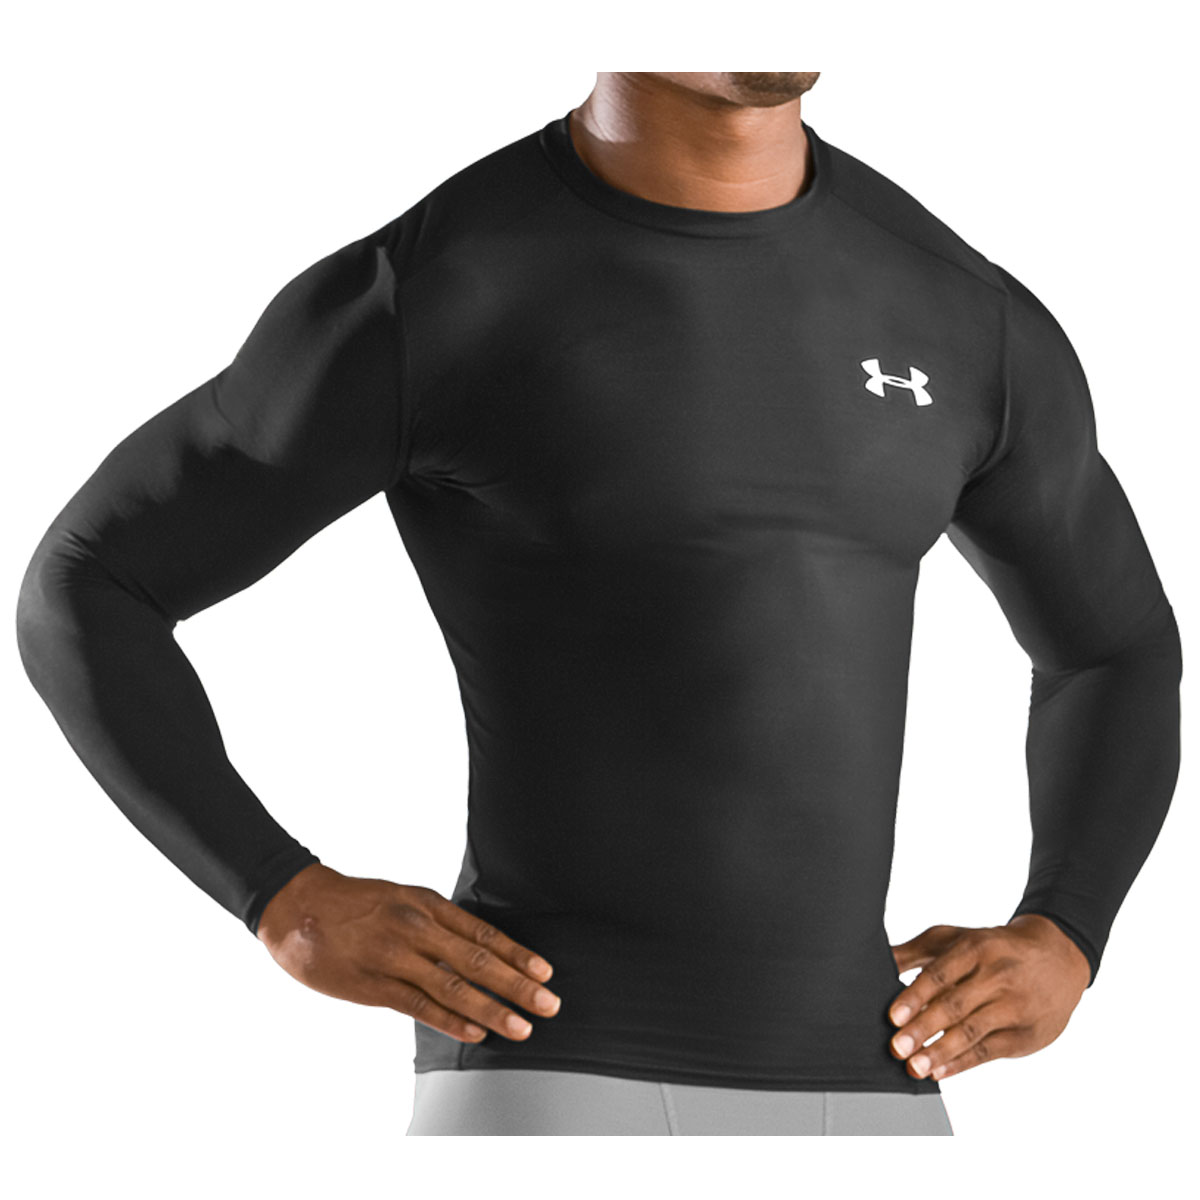 under armour men 39 s heatgear compression longsleeve top ebay. Black Bedroom Furniture Sets. Home Design Ideas